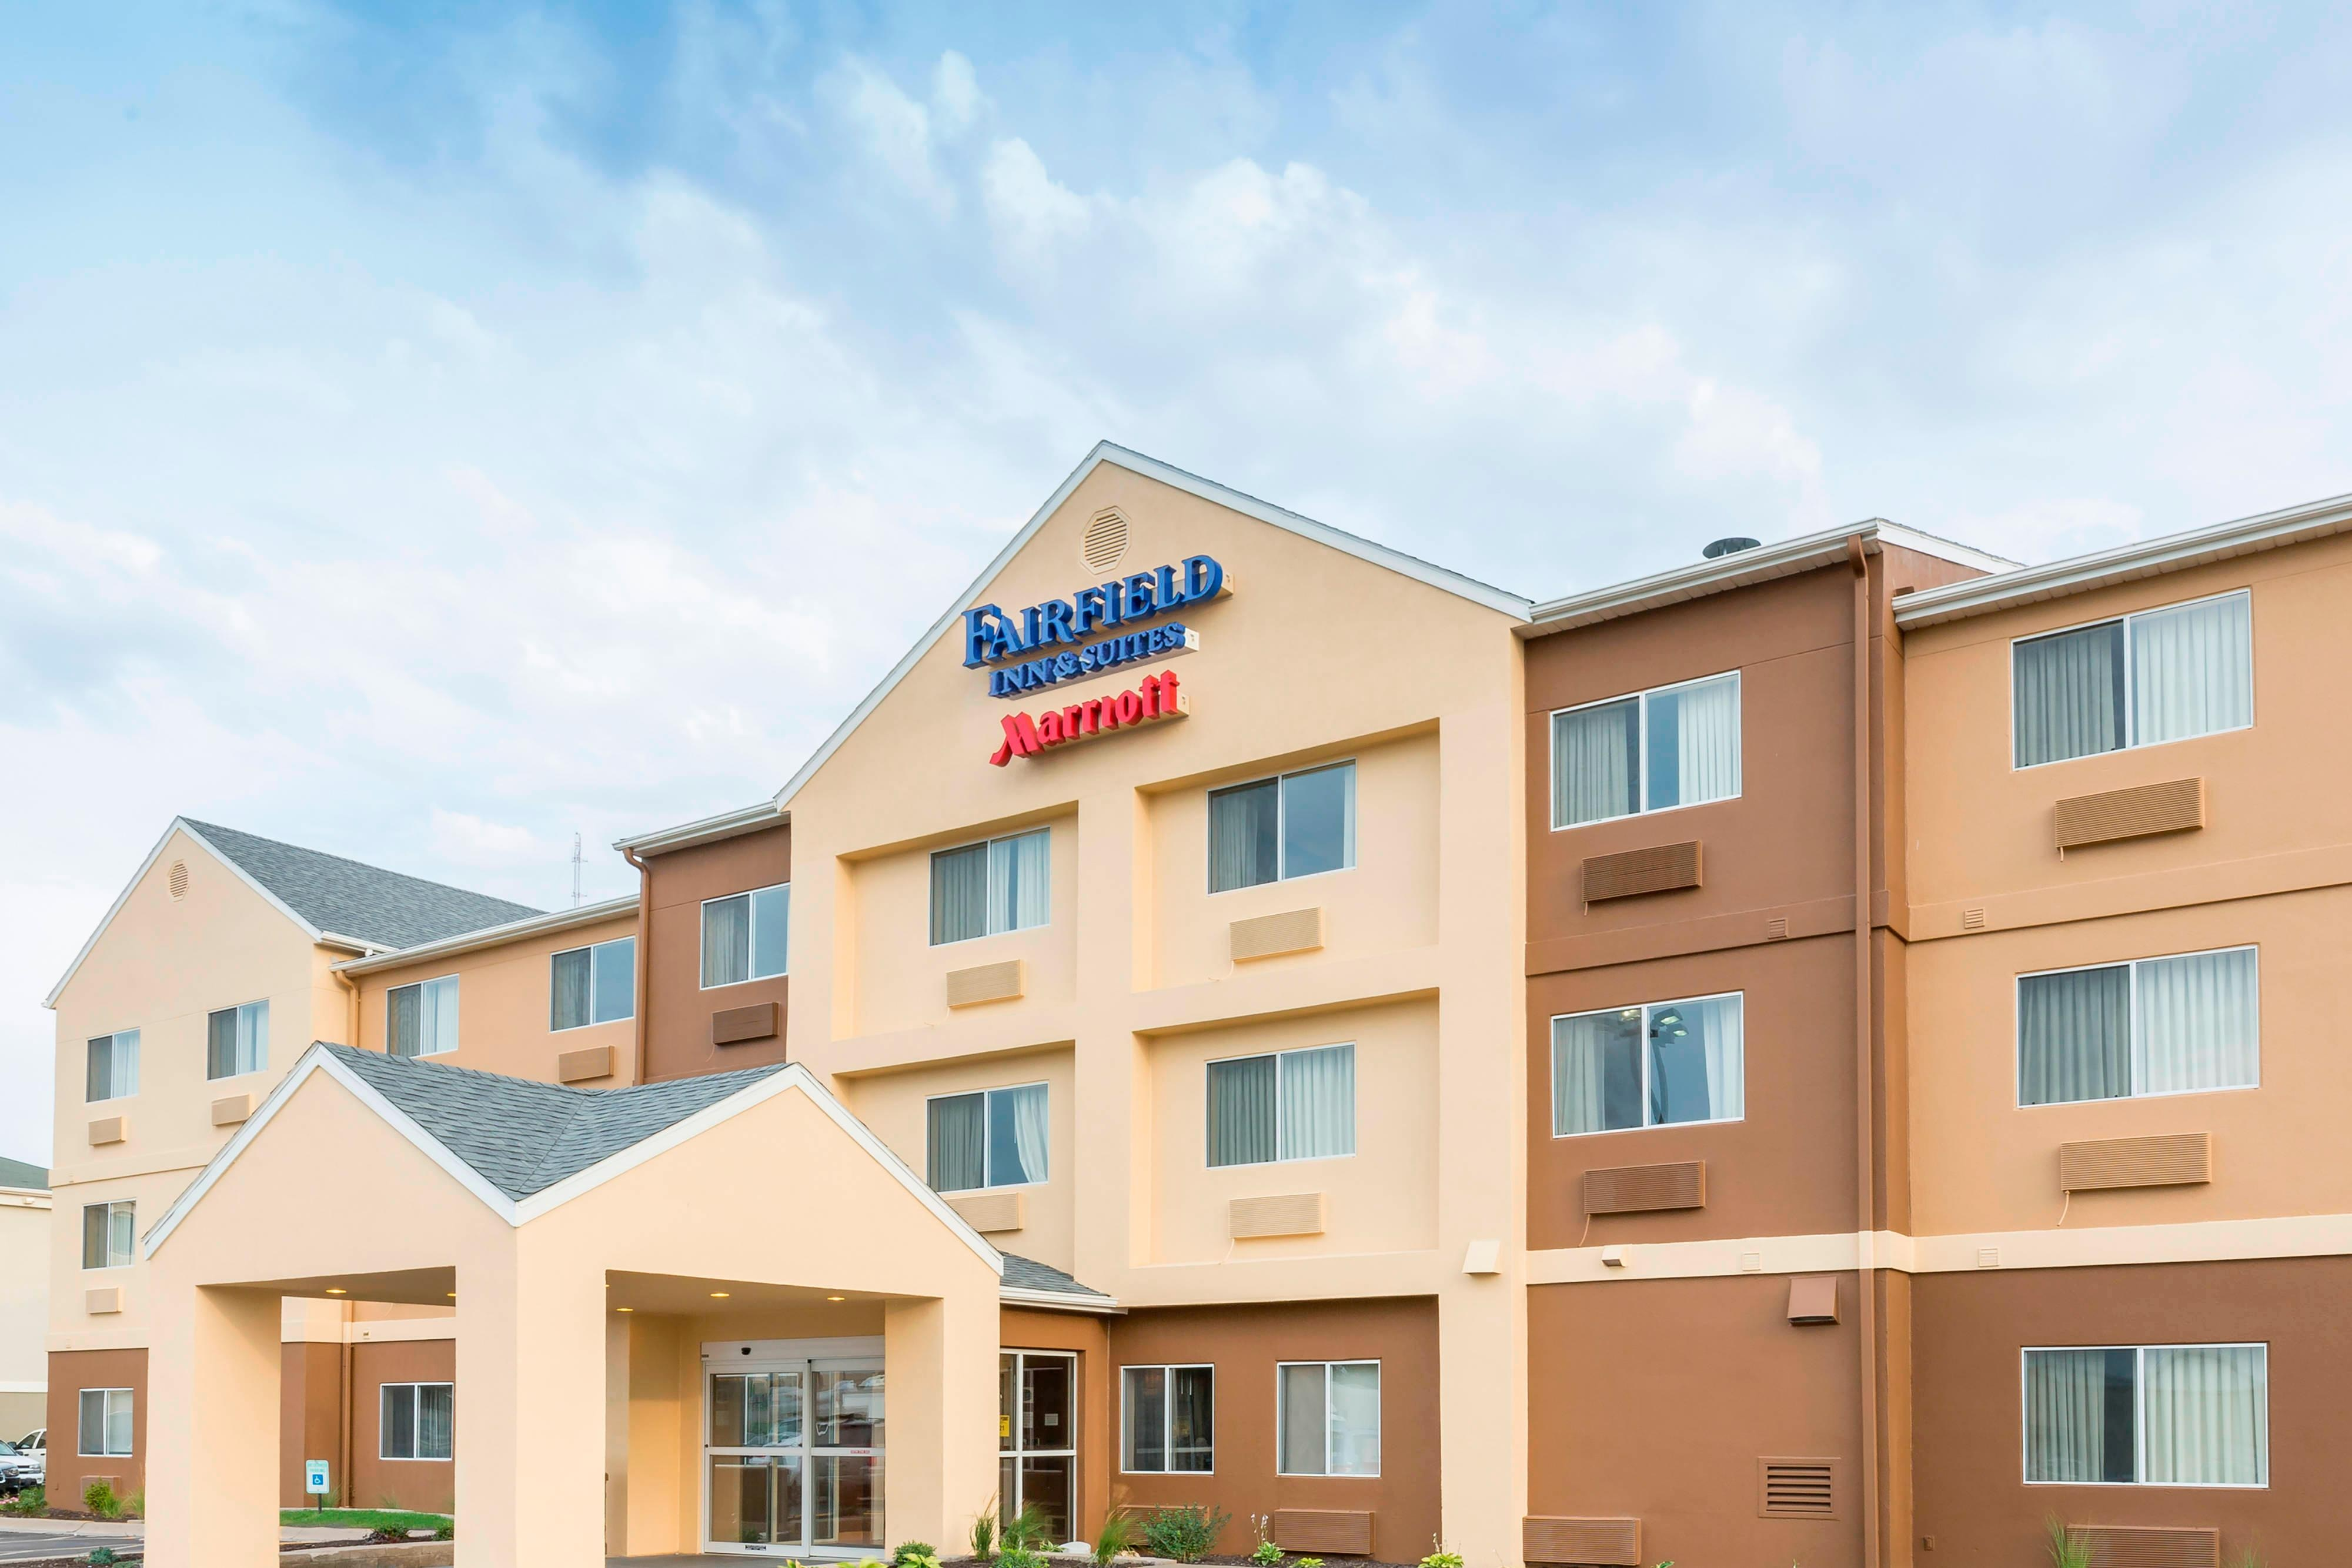 Exterior of the Fairfield Inn & Suites Lincoln